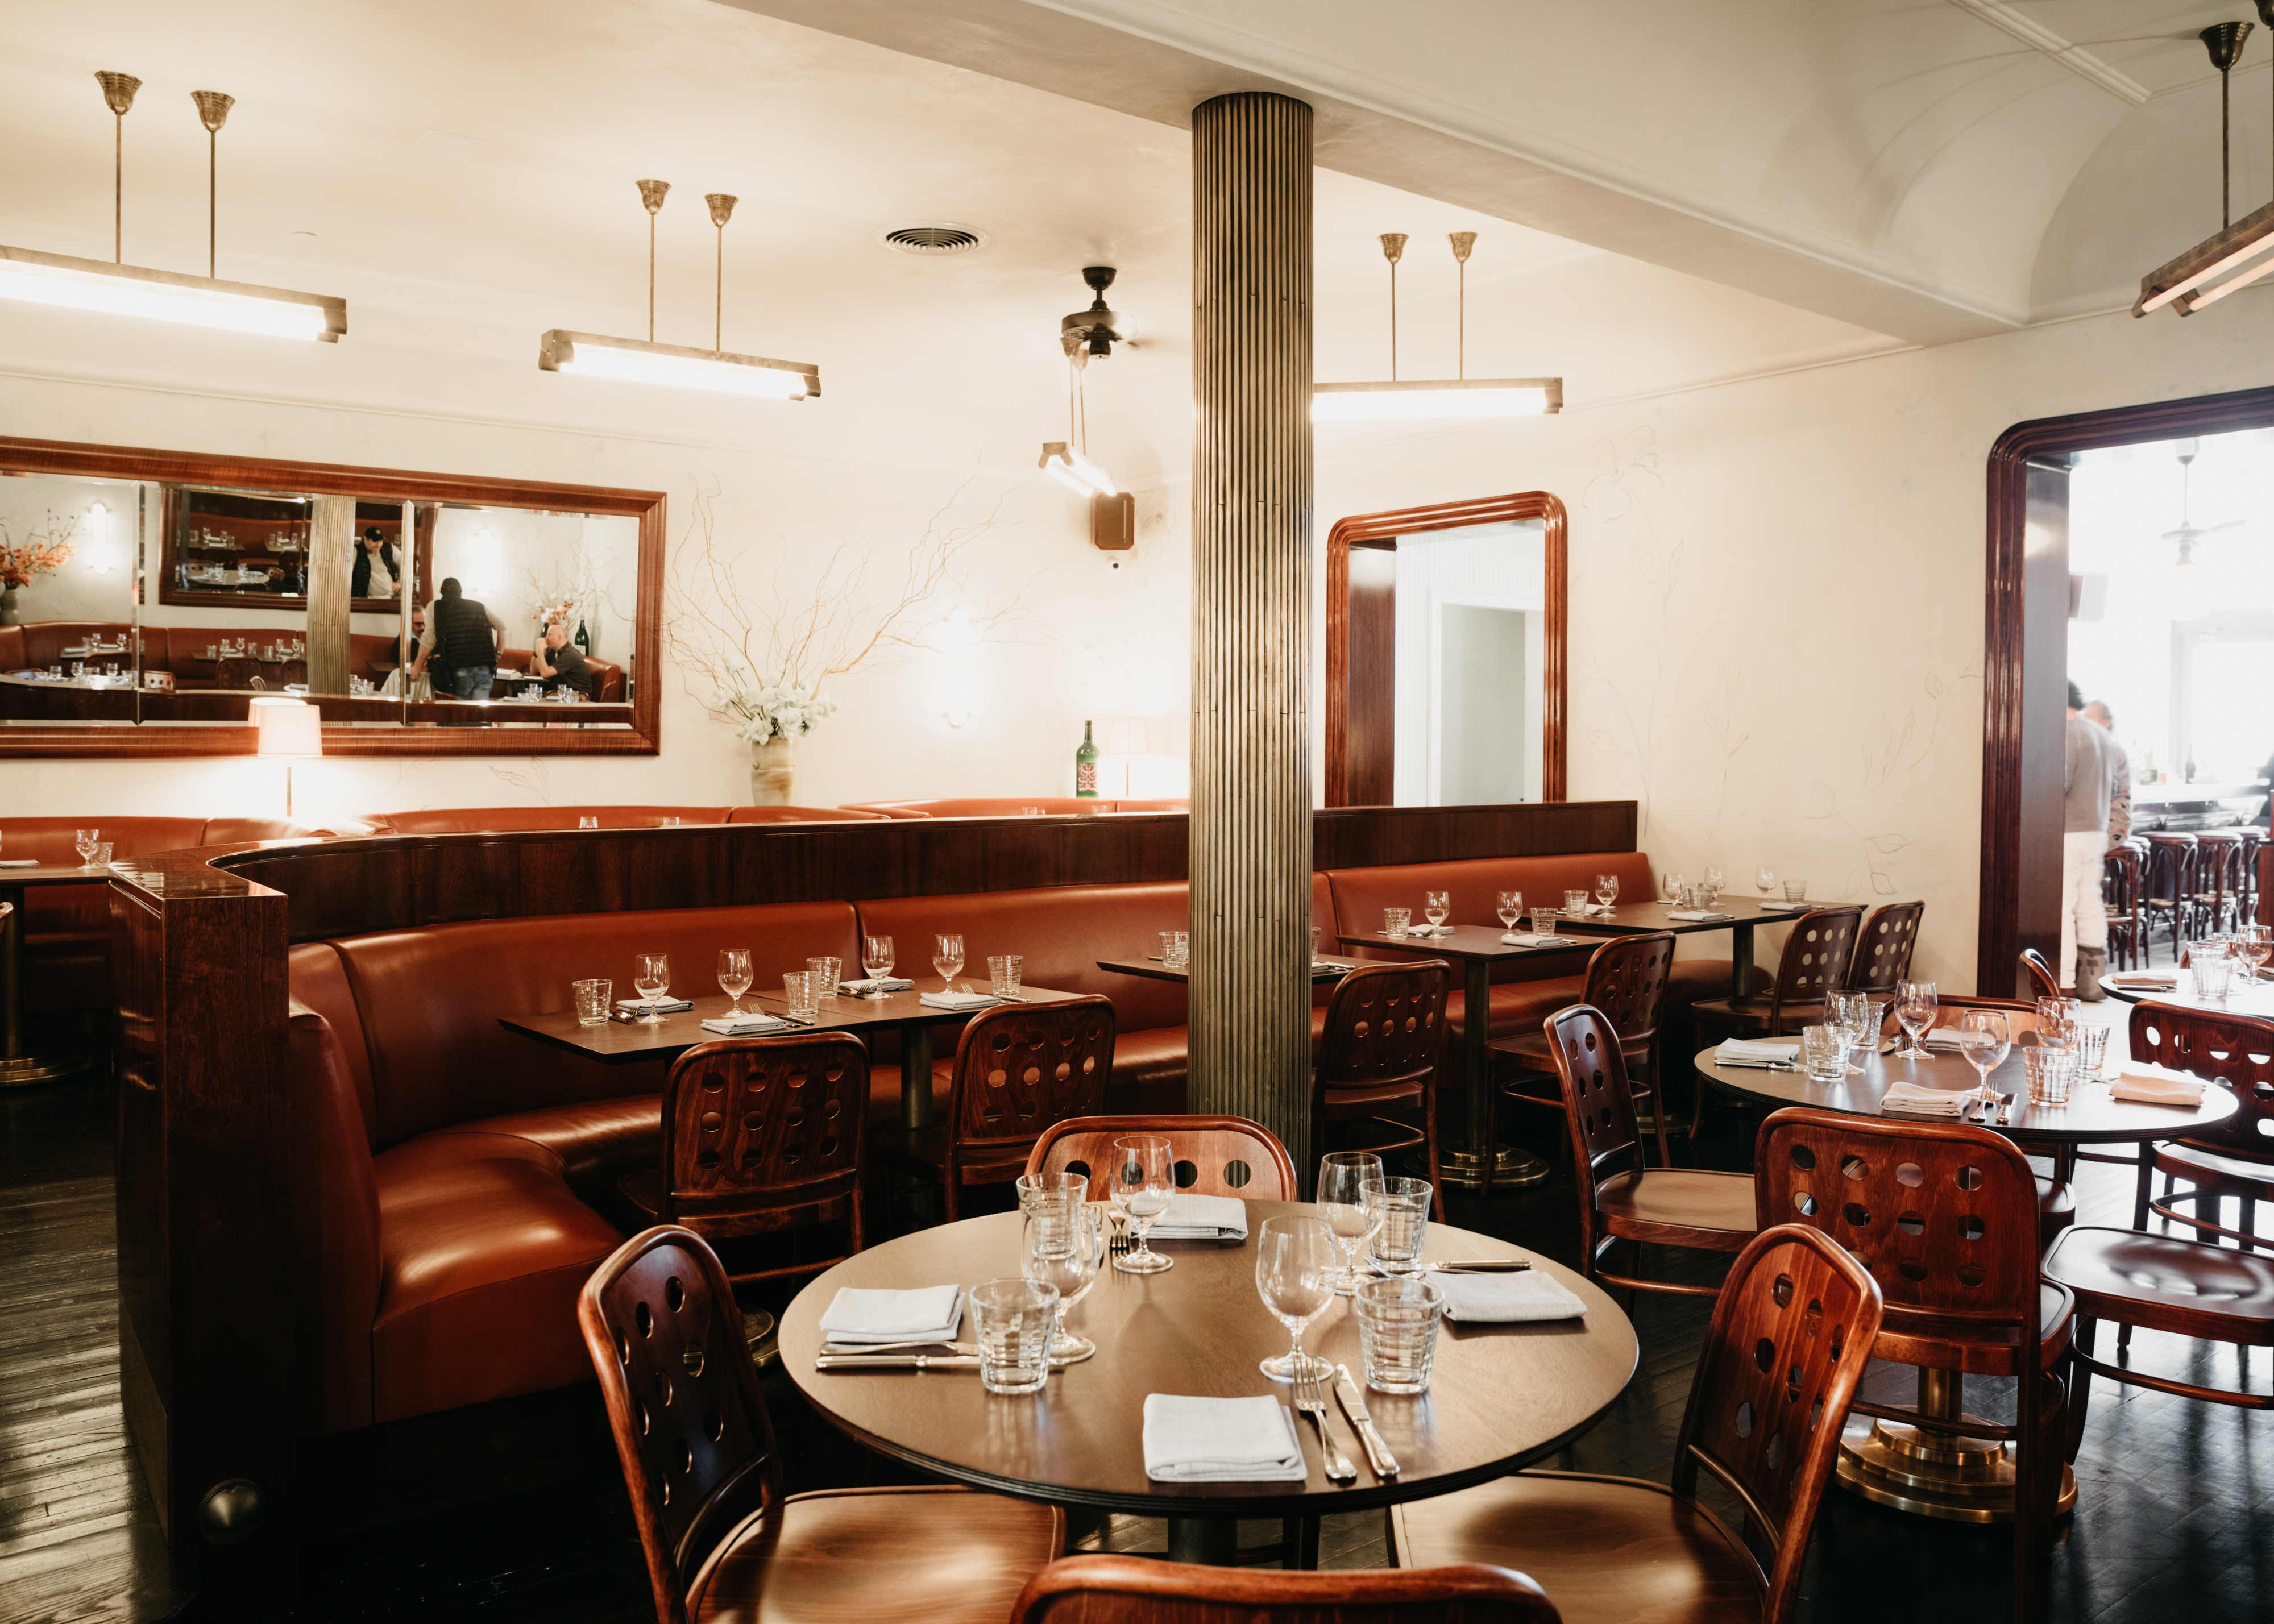 Forum on this topic: The Five Best Sit-Down Restaurants for Real , the-five-best-sit-down-restaurants-for-real/